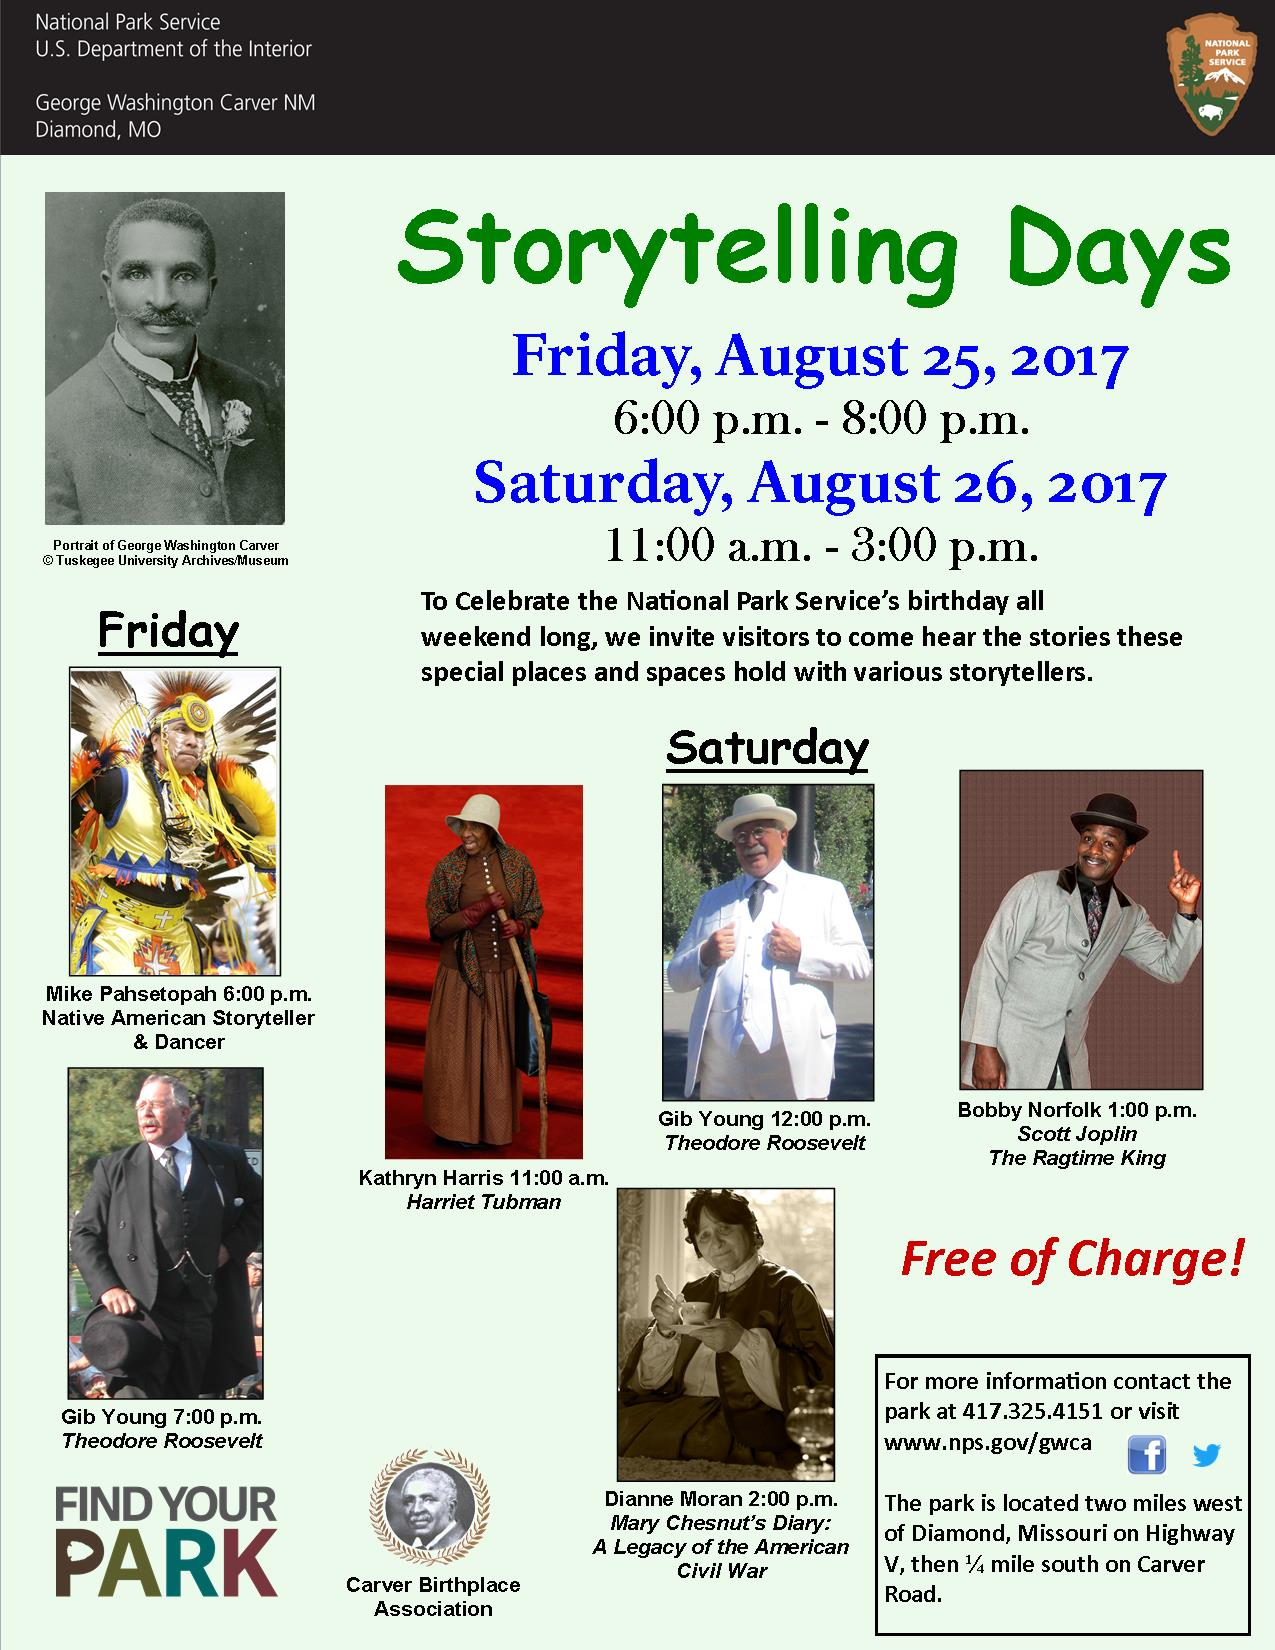 Image includes information about an upcoming event at the park. The photographs also has images of George Washington Carver and storytellers for the event.